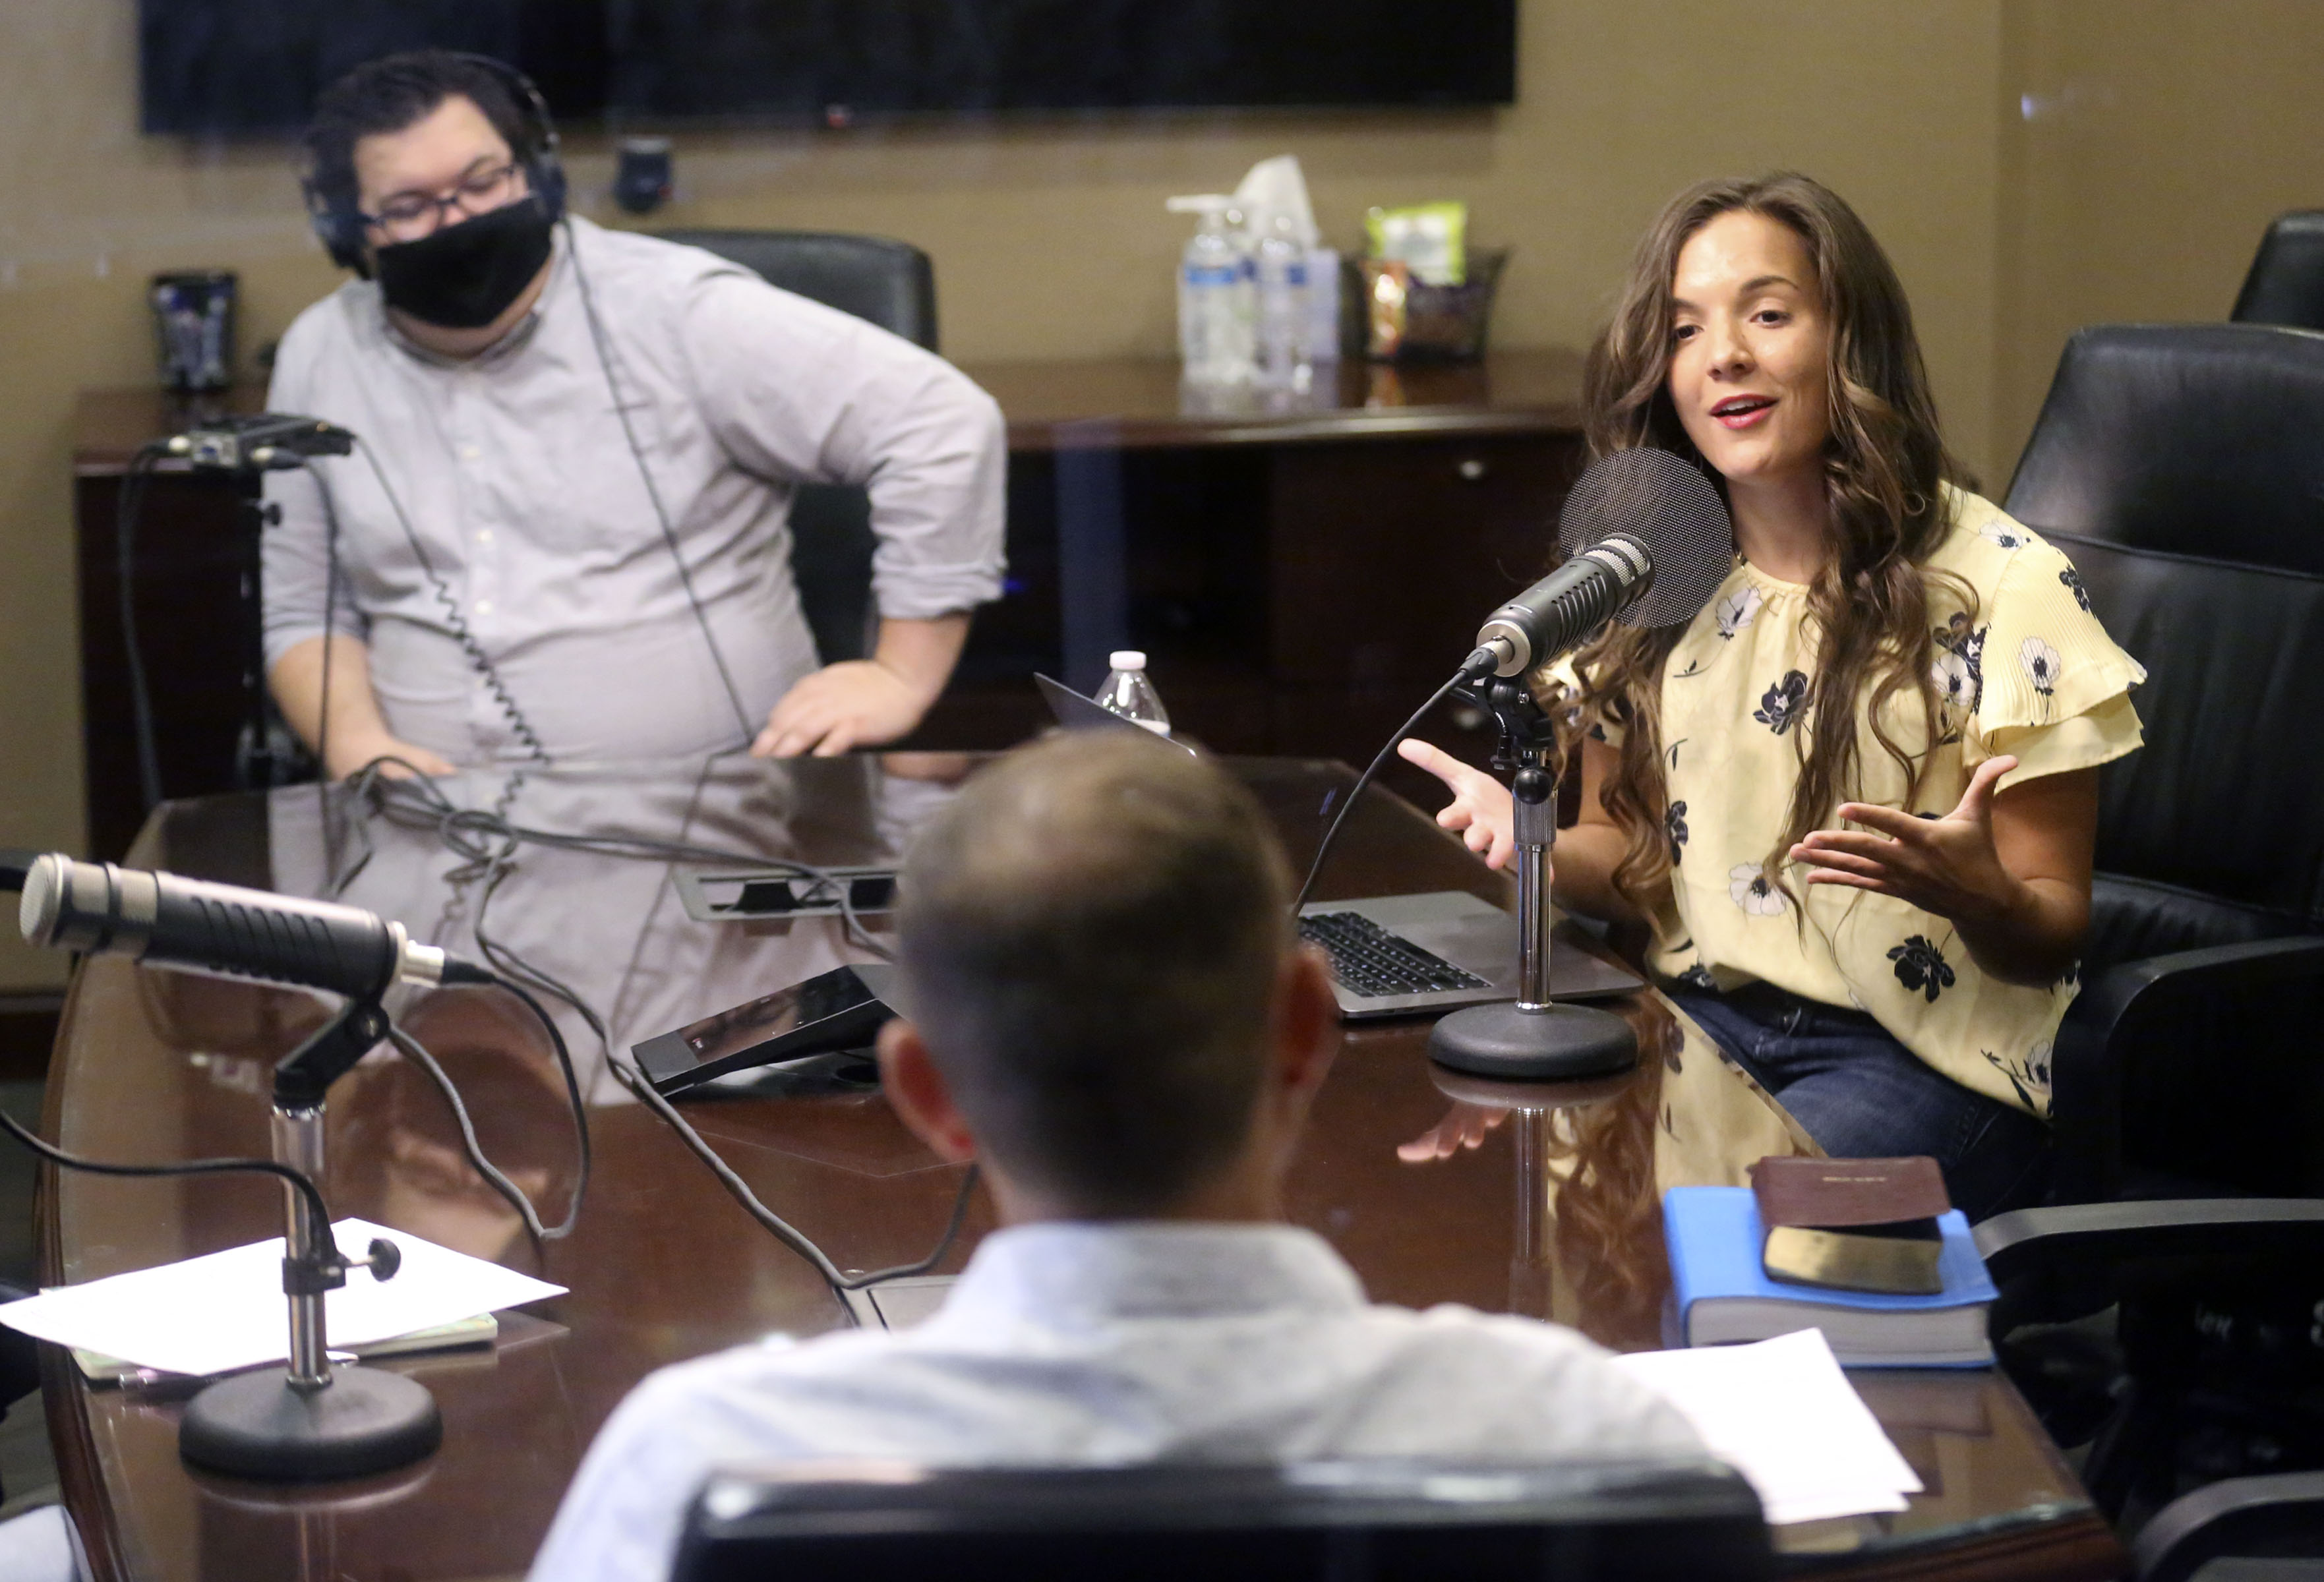 """Host and producer Morgan Jones, right, talks with guest Eric Dyches while recording an episode of """"All In: An LDS Living Podcast"""" at Sorenson Capital in Lehi on Friday, Sept. 25, 2020. Derek Campbell, sound engineer, is on the left."""